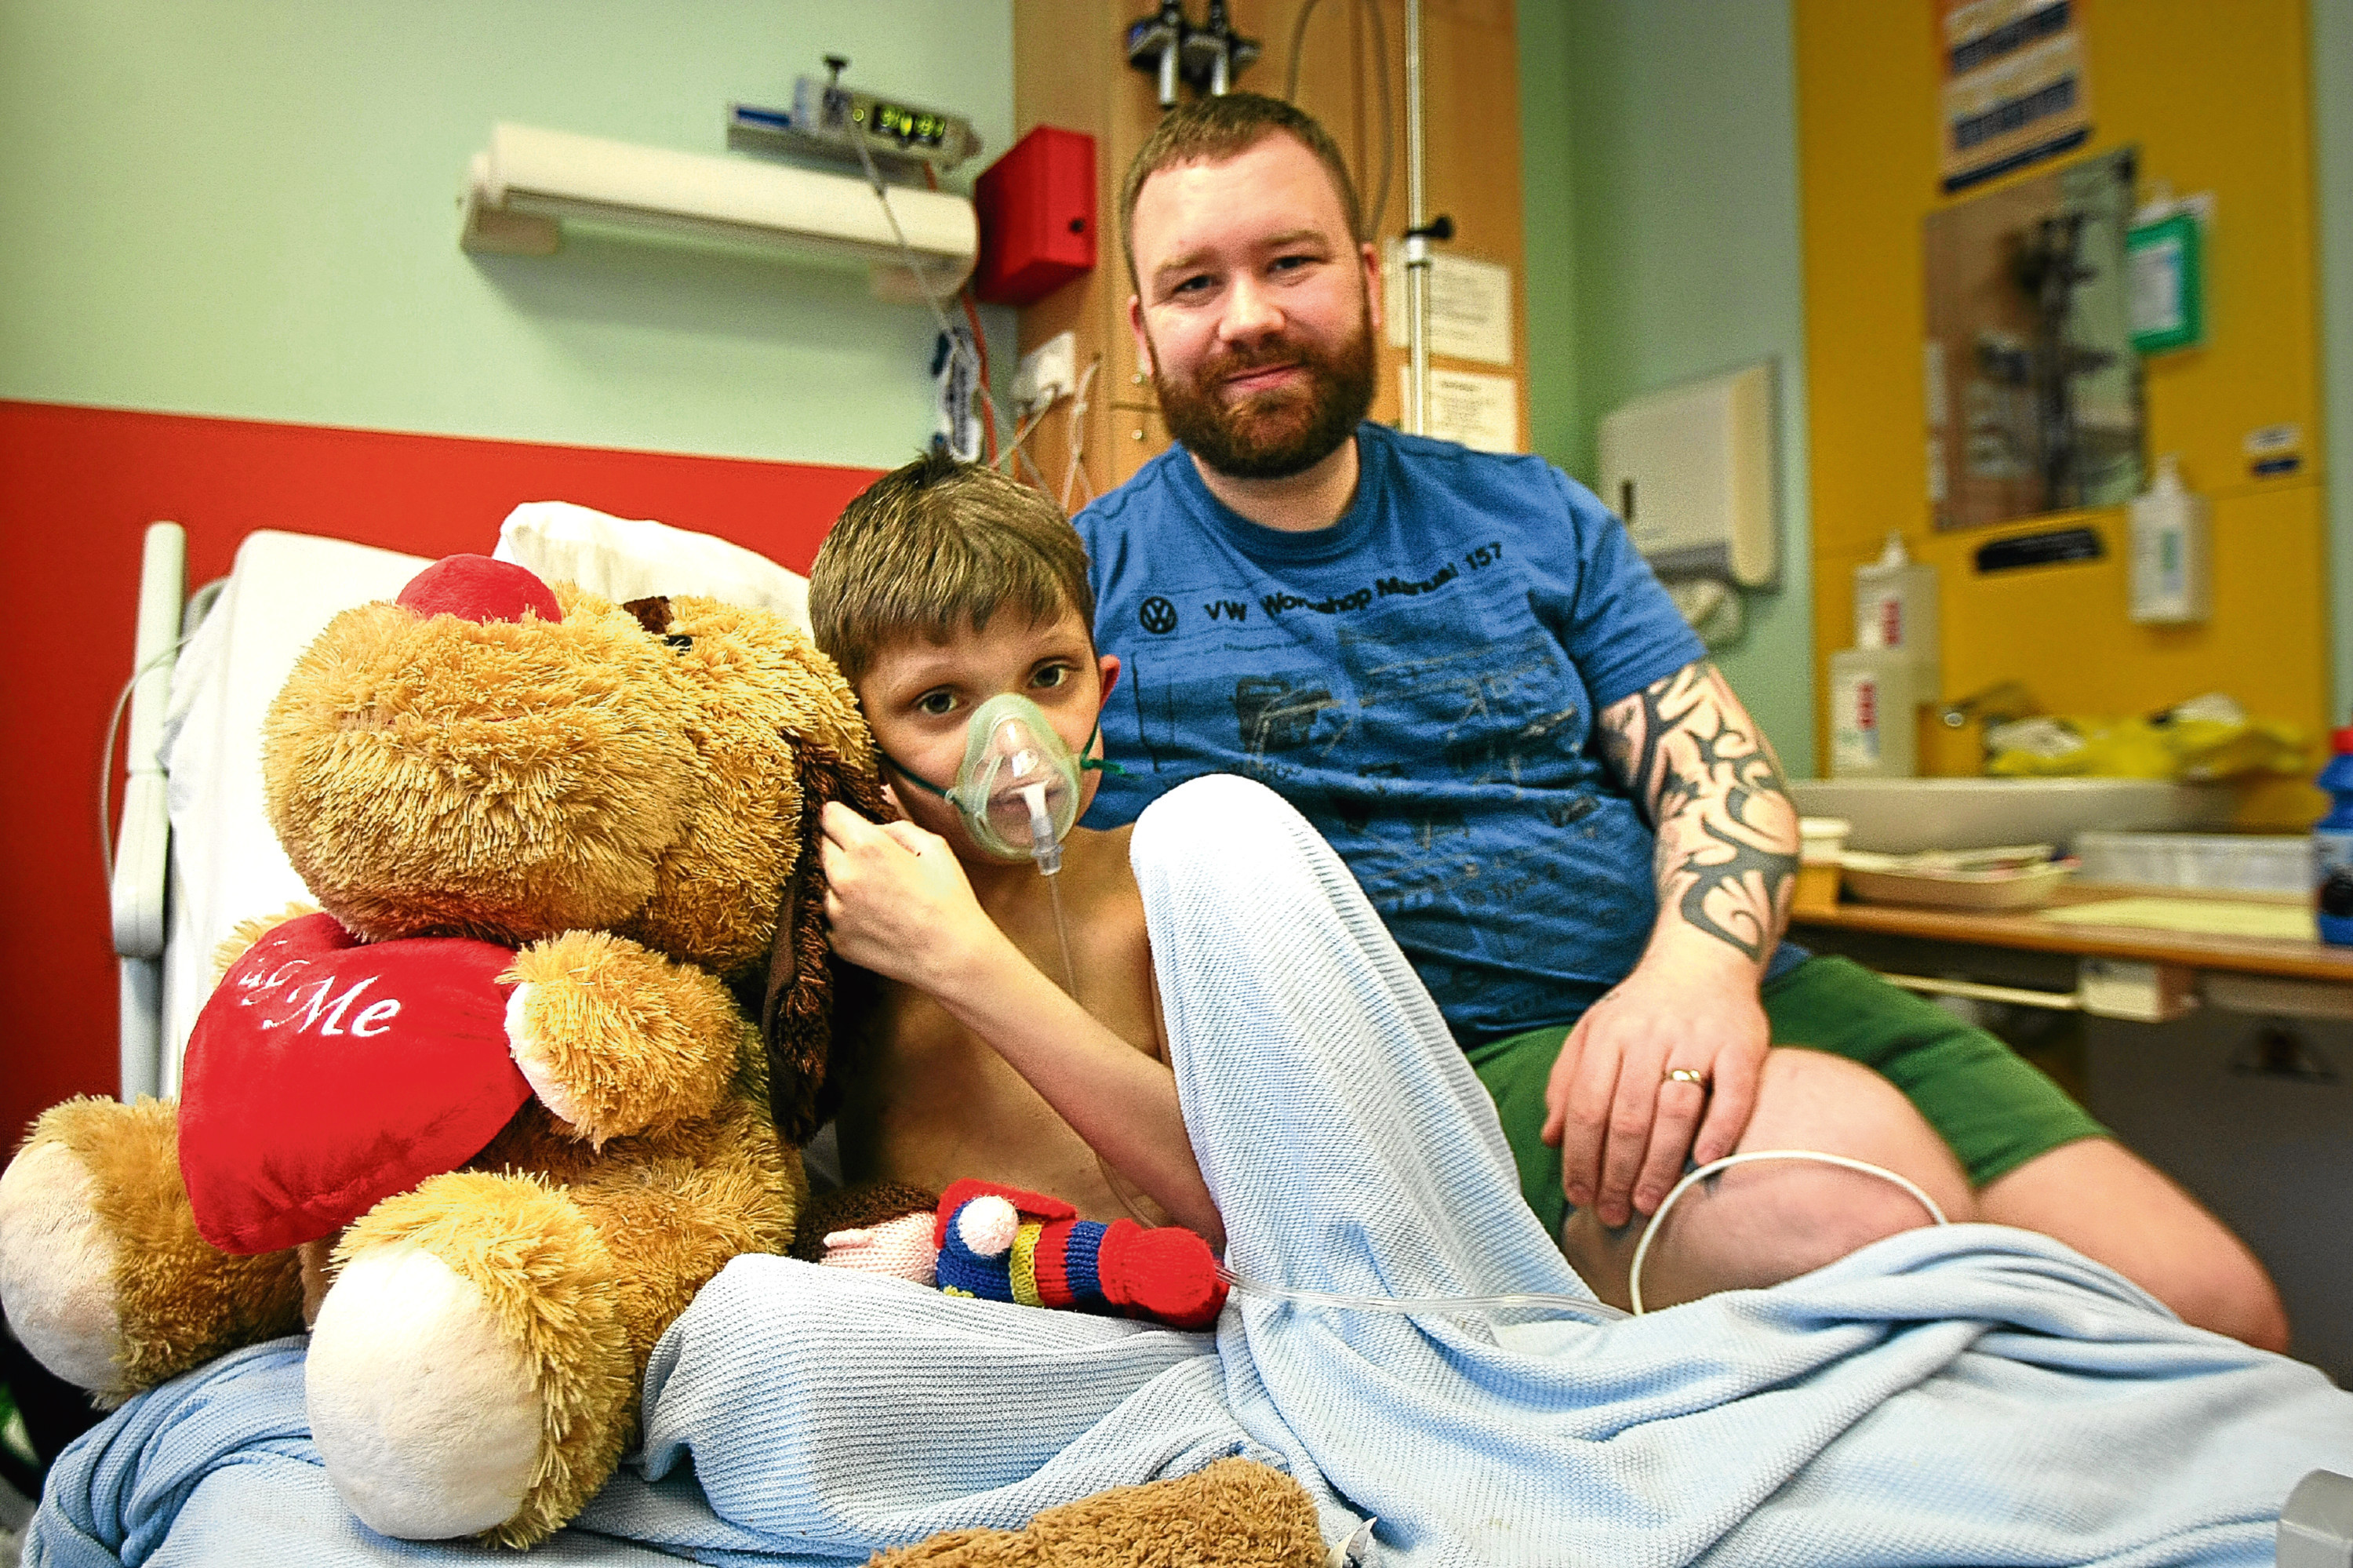 Local boy Kenzy Oliver, who has just had a liver transplant, with his dad Nicky at Ninewells Hospital. The Scottish Government is looking at how to increase organ donation.